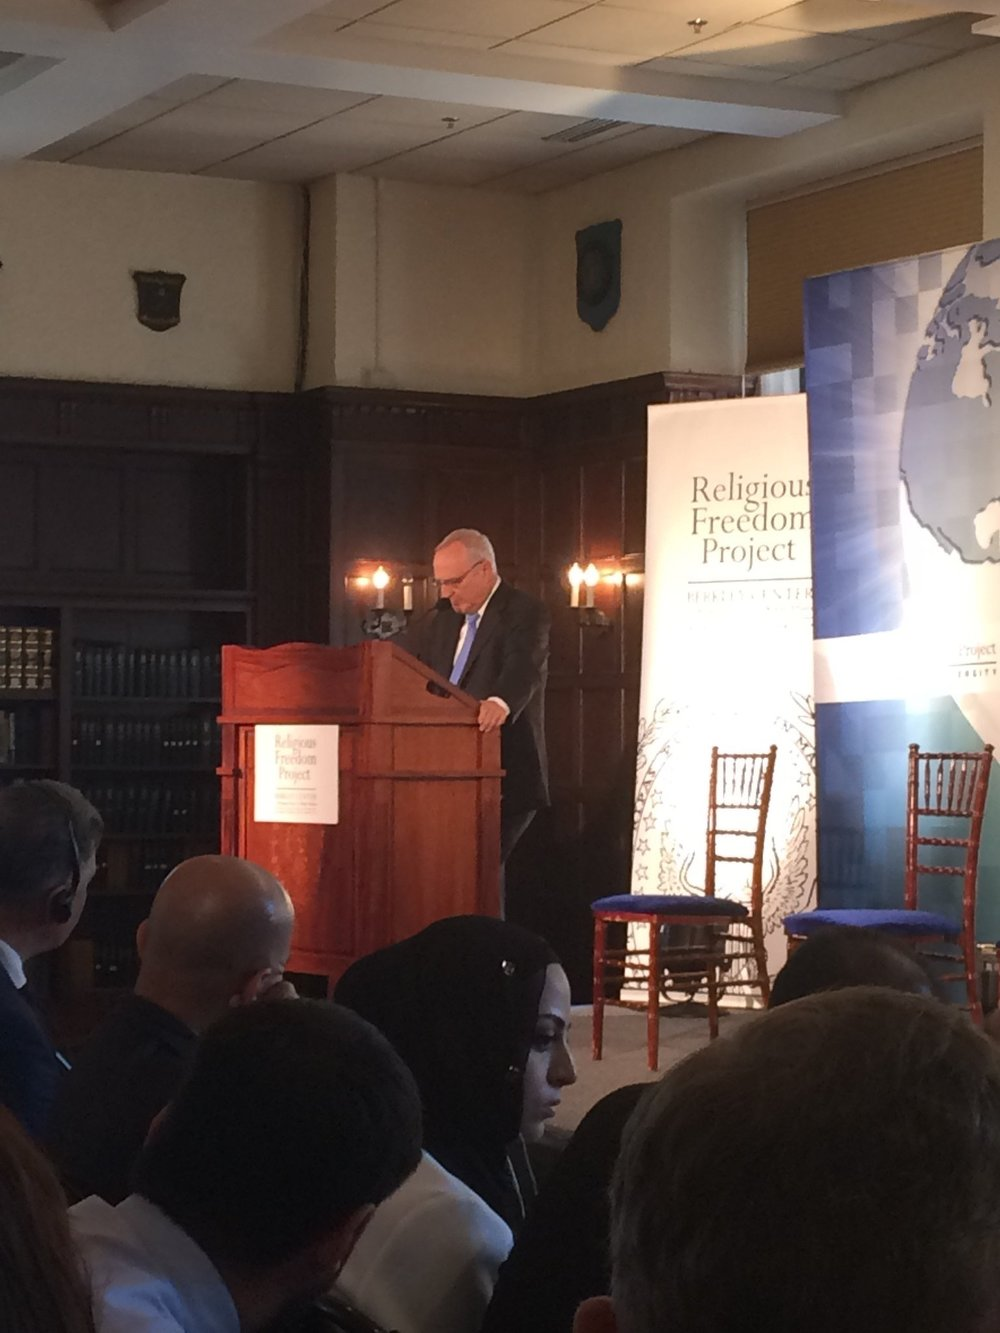 Ambassador David Saperstein, U.S. State Department, Ambassador-at-Large for International Religious Freedom